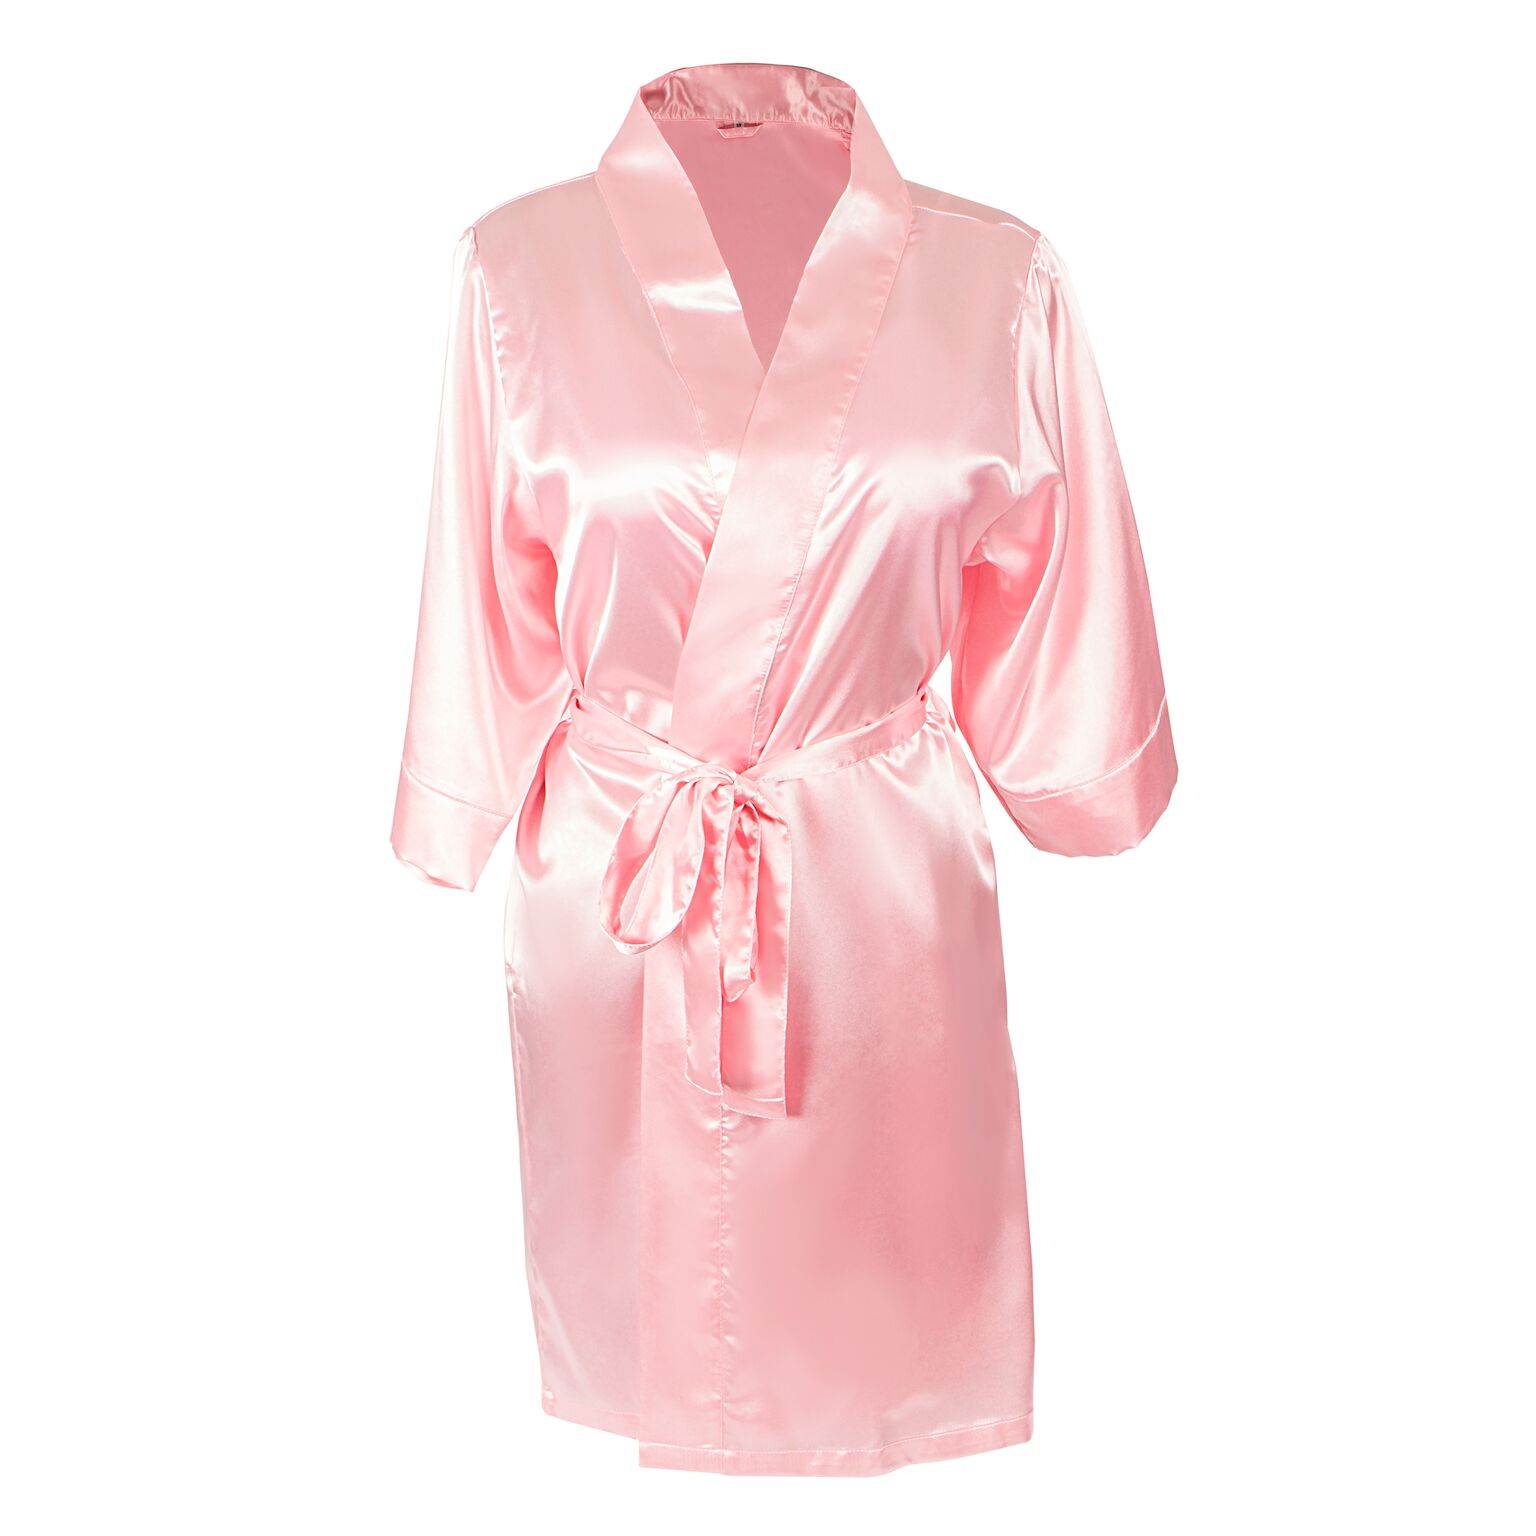 Cathys Concepts 1804P-SM-ST Team Bride Satin Robe, Pink - Small & Medium